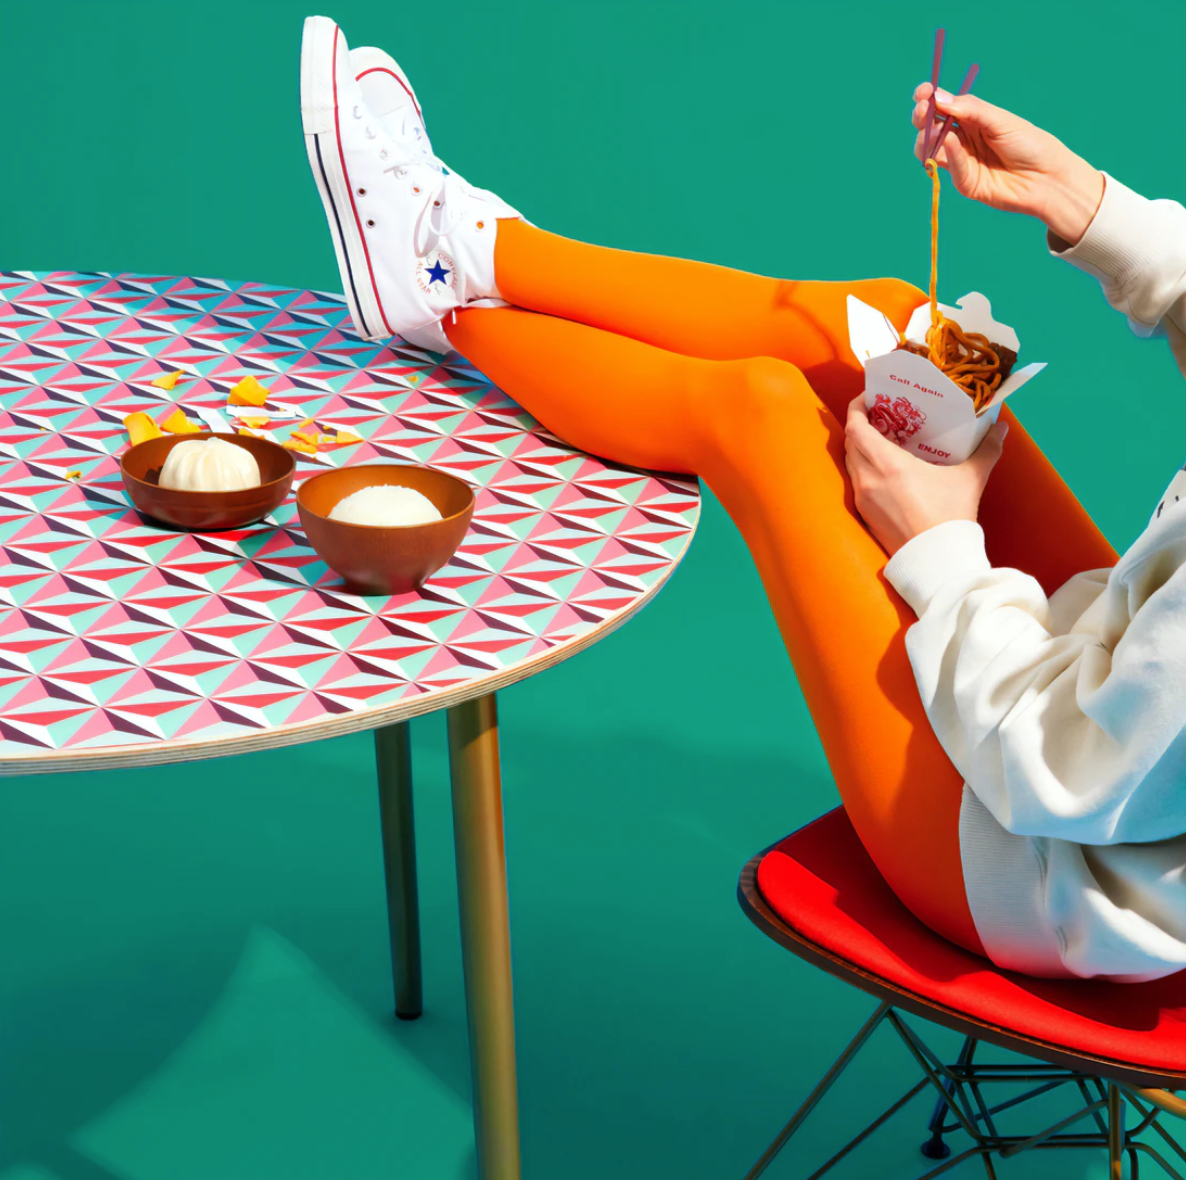 Legs on table eating noodles By Inside Weather